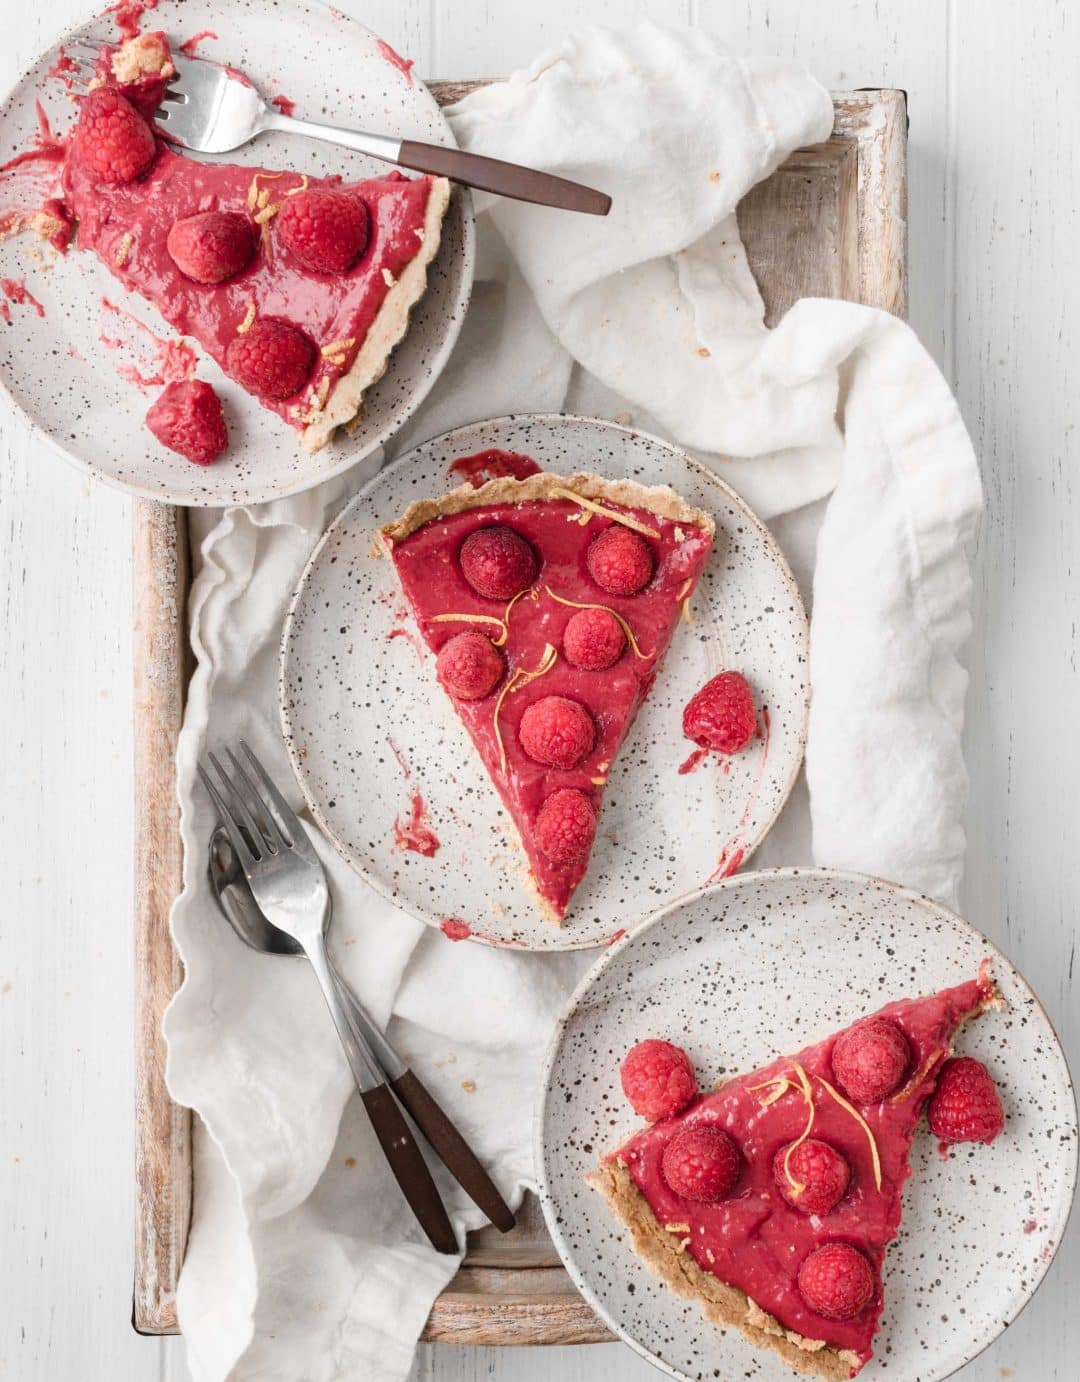 raspberry lemon tart slices